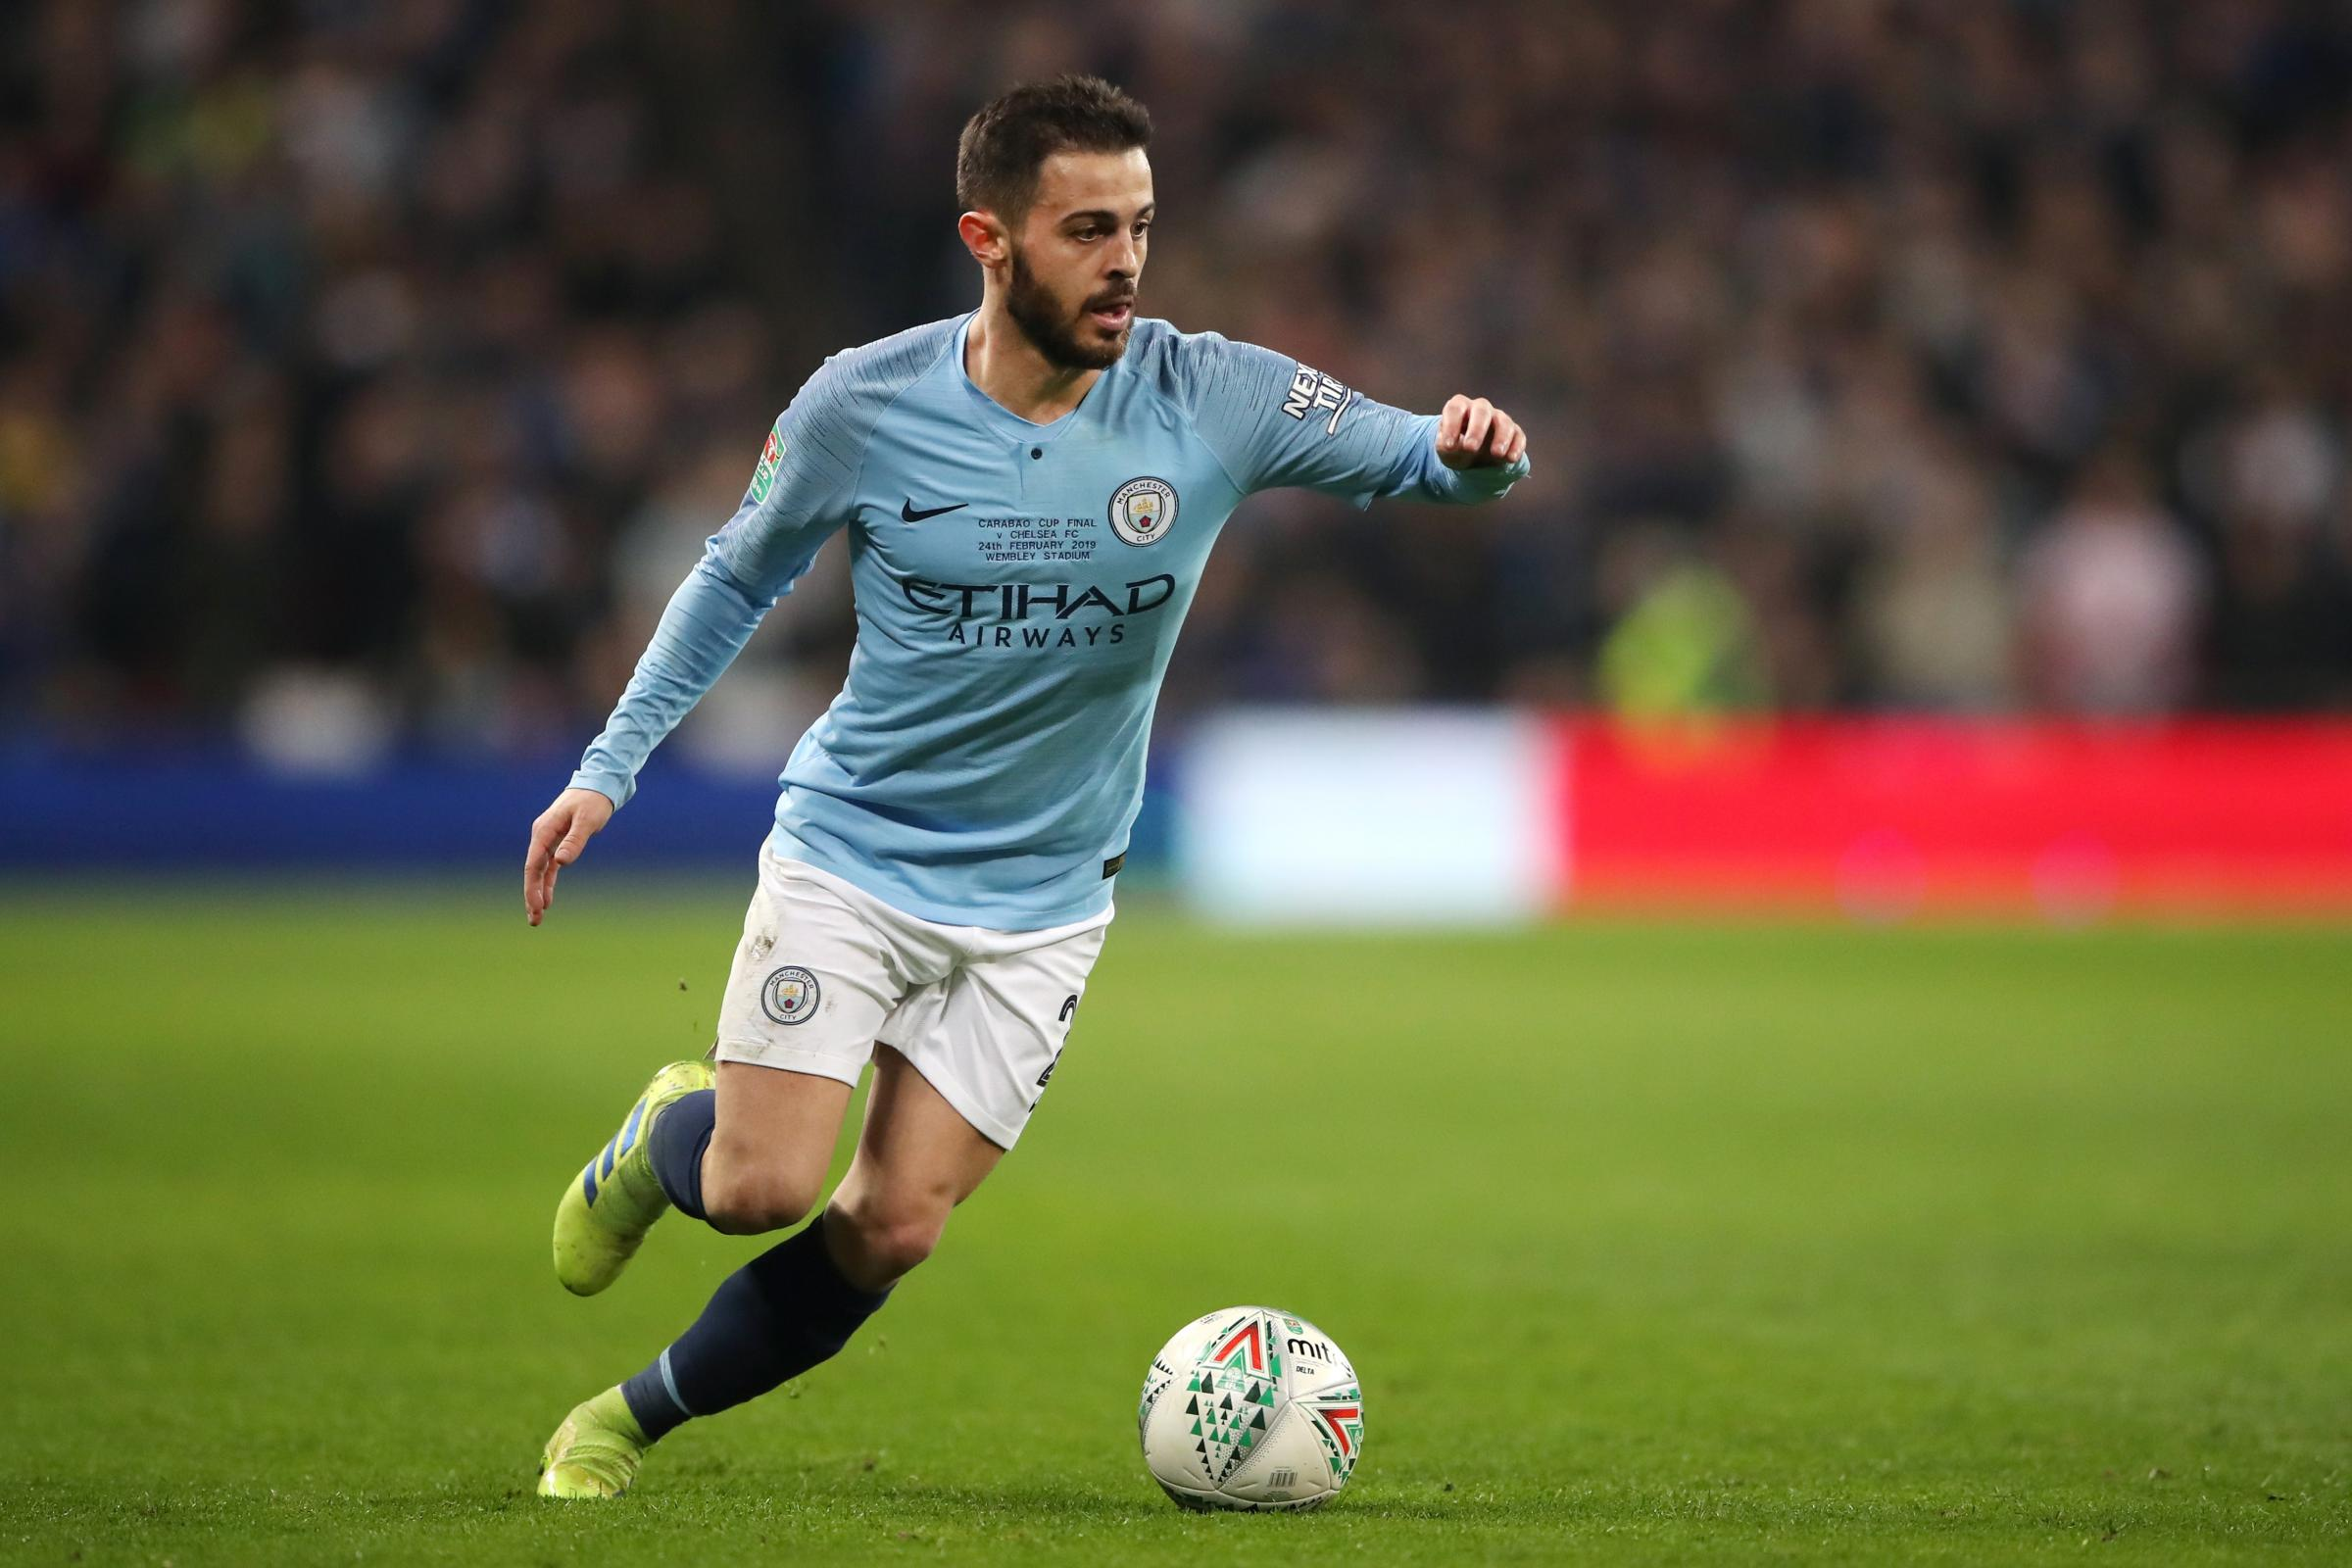 Bernardo Silva is preparing for the pressure of a Manchester derby